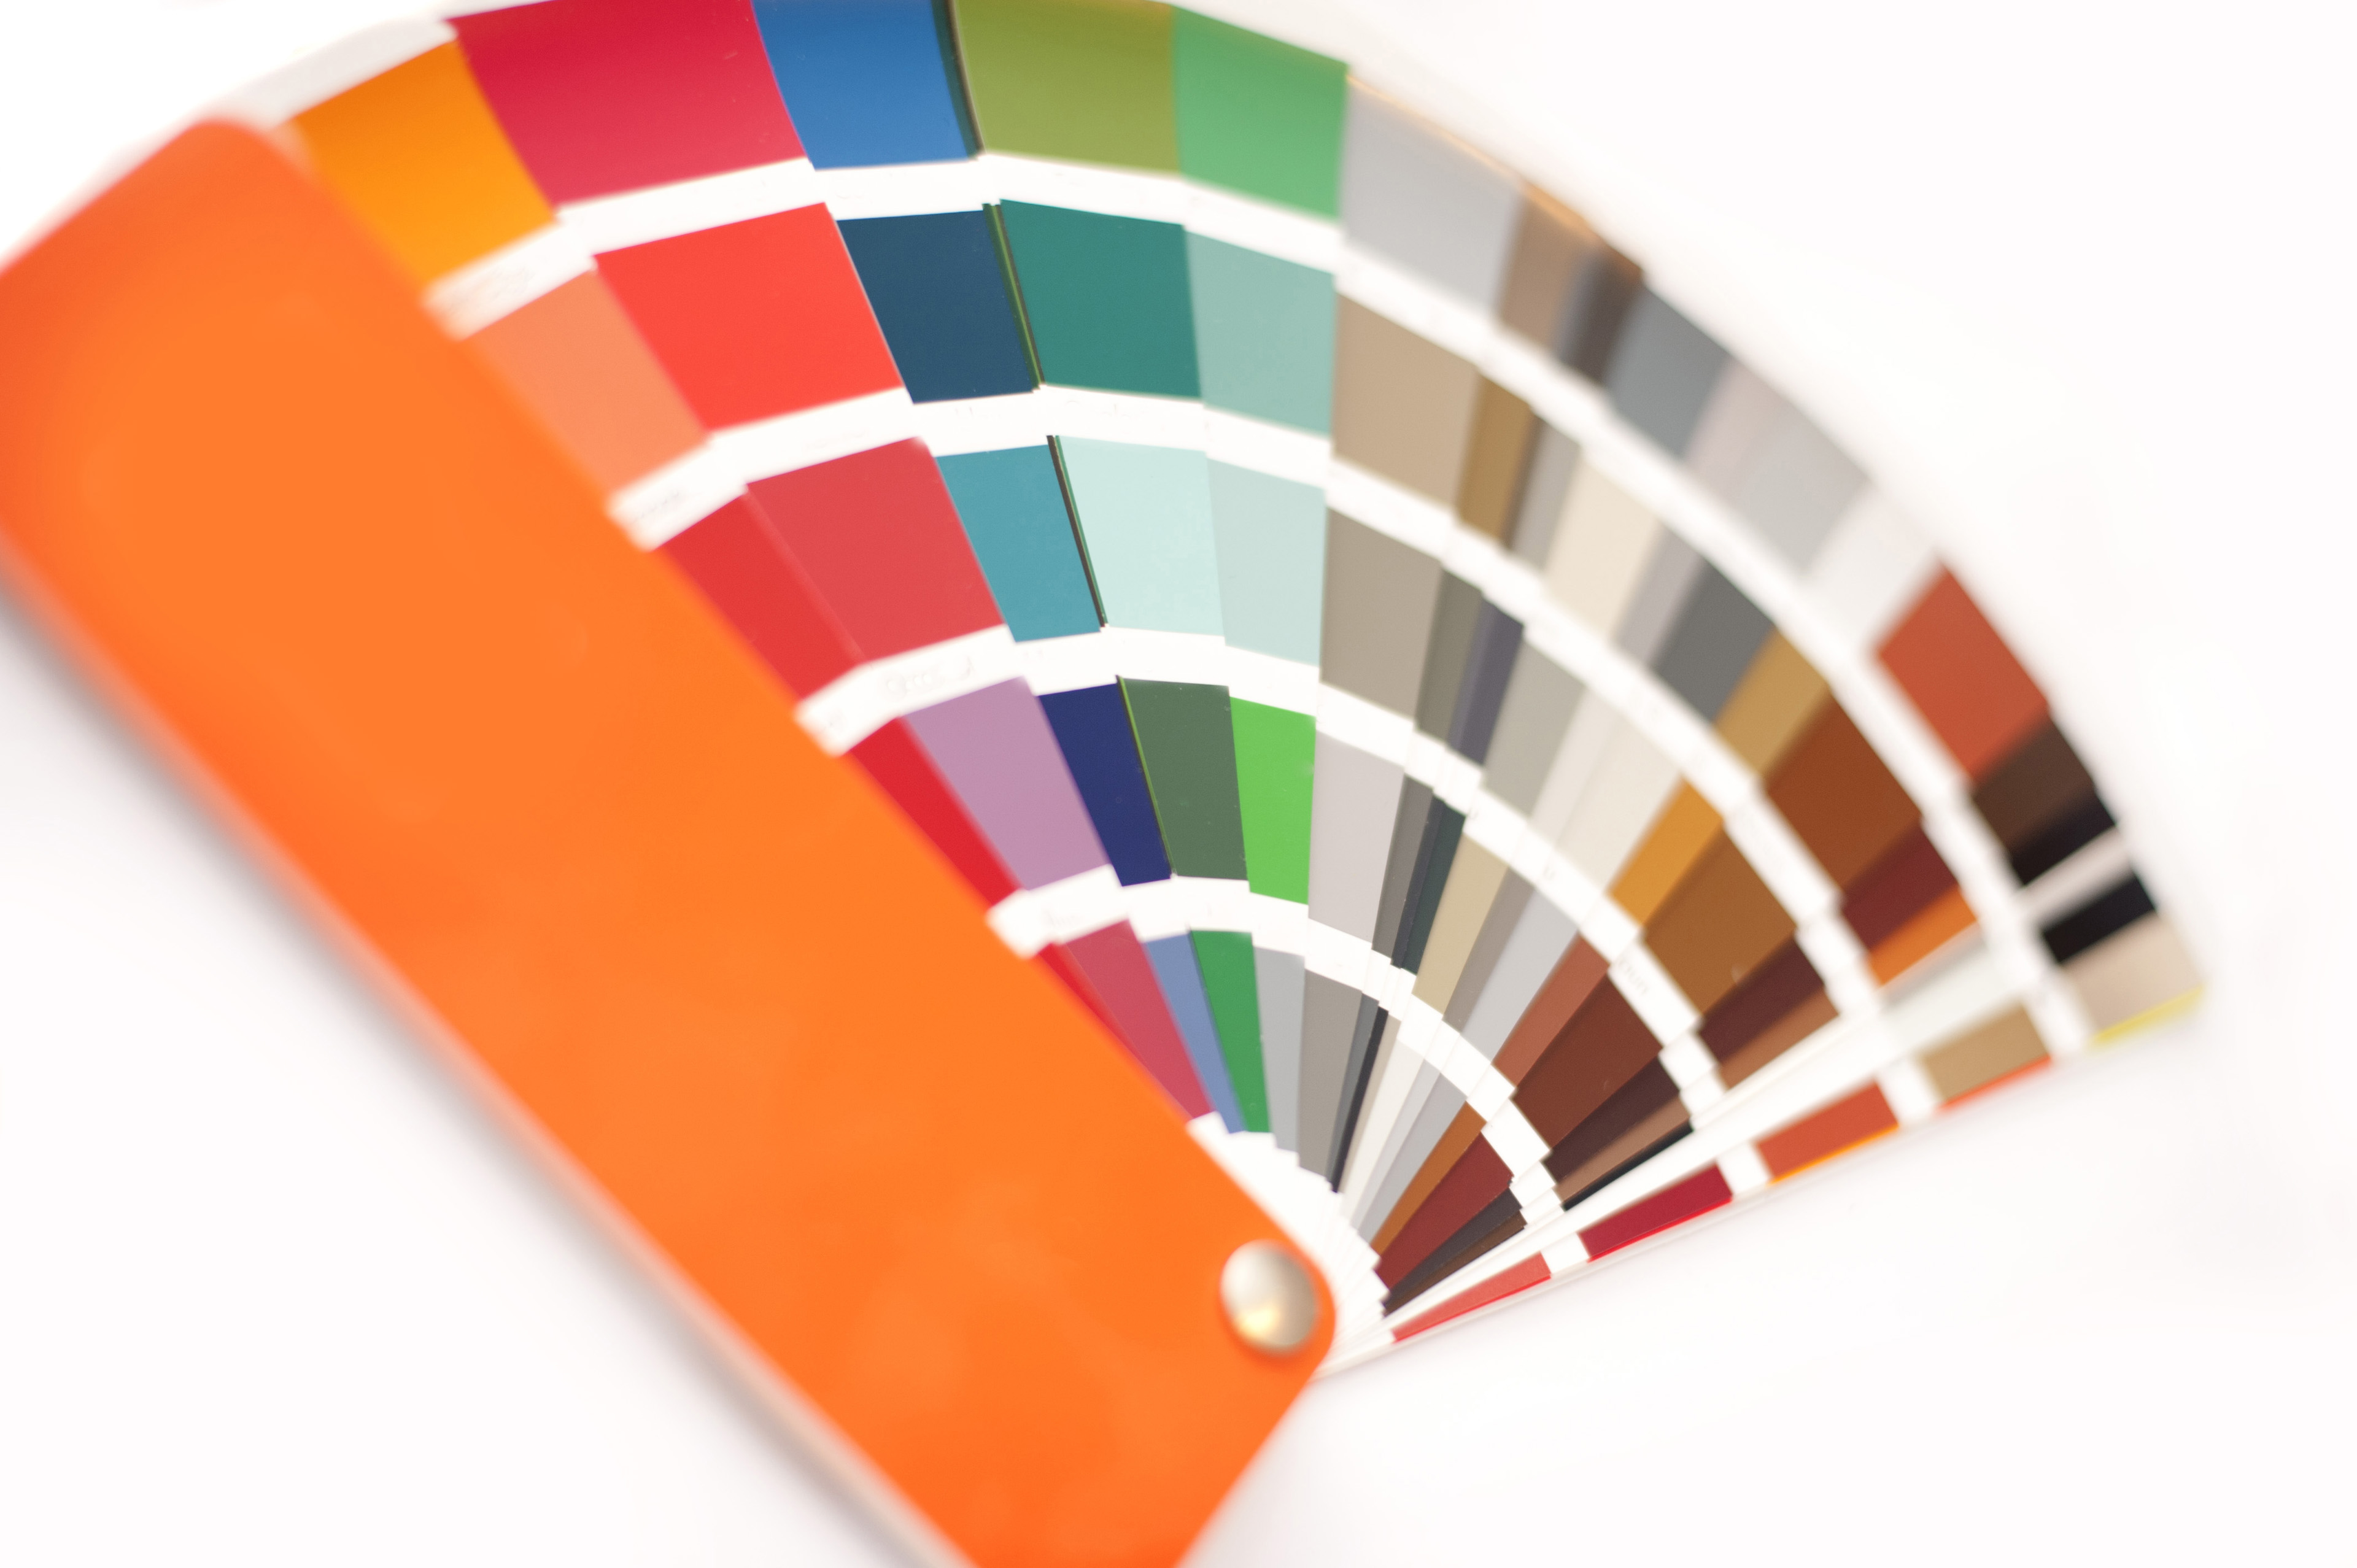 Color picker for interior decorating with swatches in the colors of the spectrum fanned out on a white background